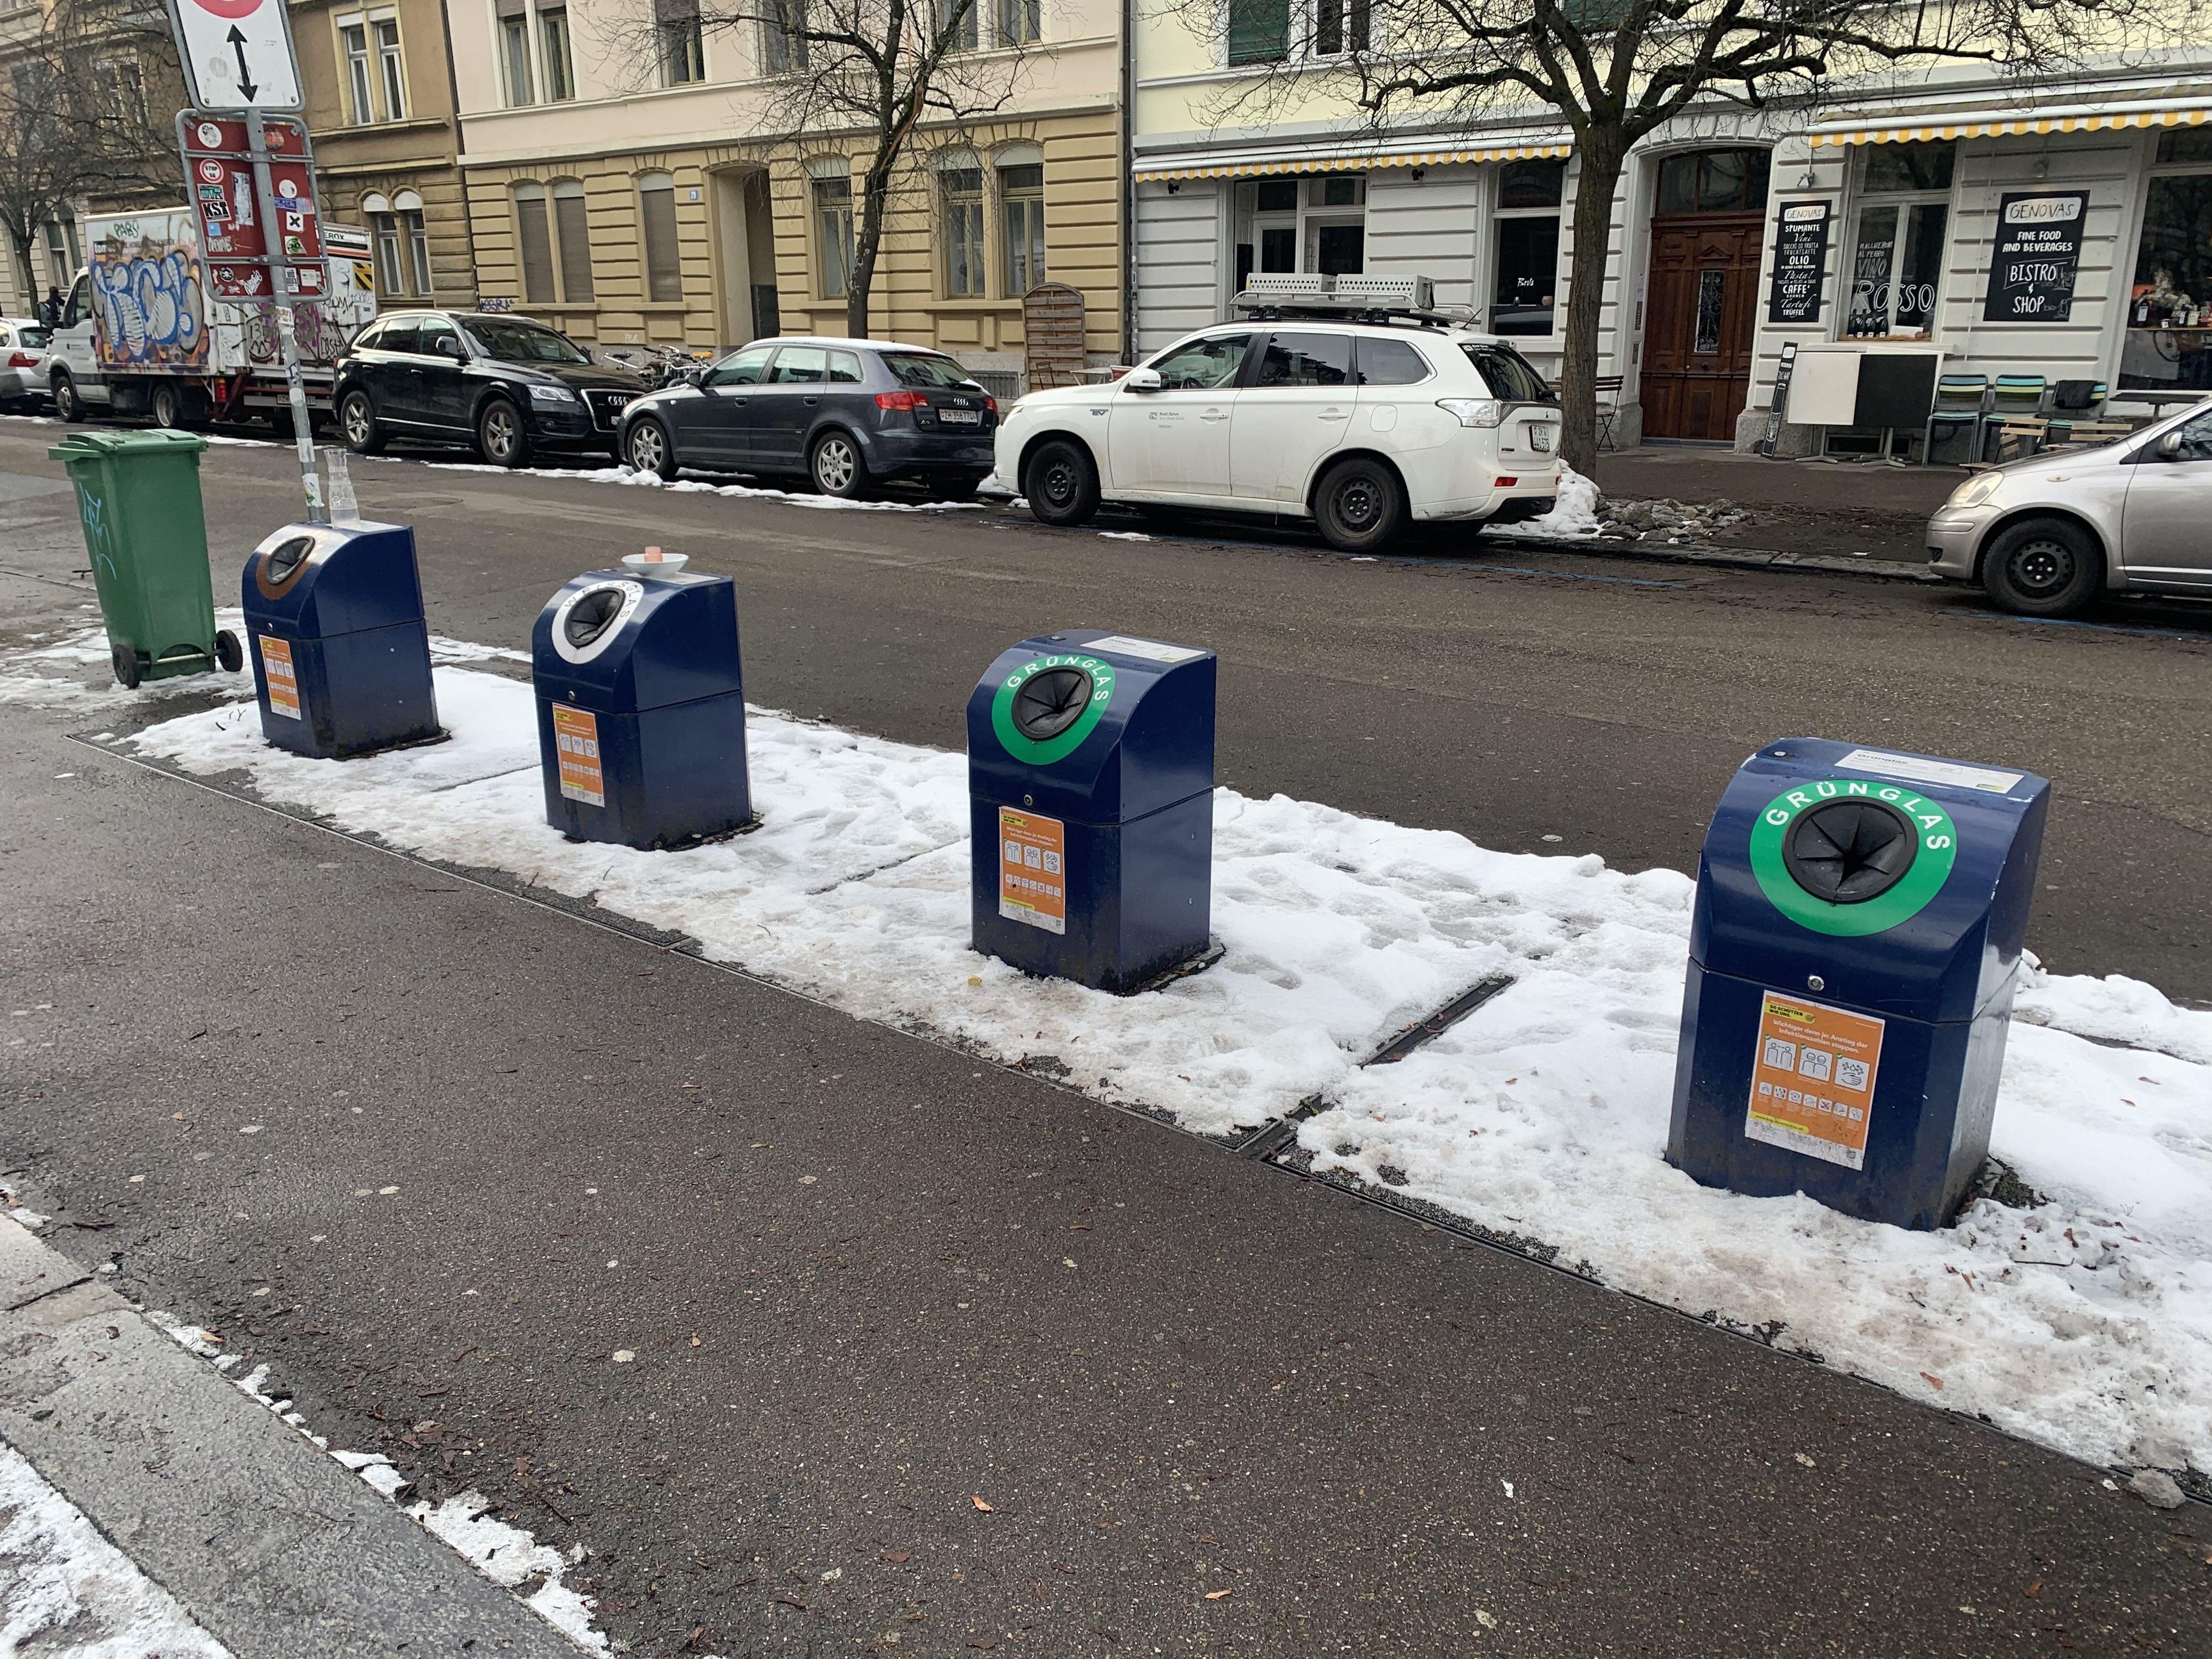 Four blue recycling bins: brown glass, white glass, and two for green glass